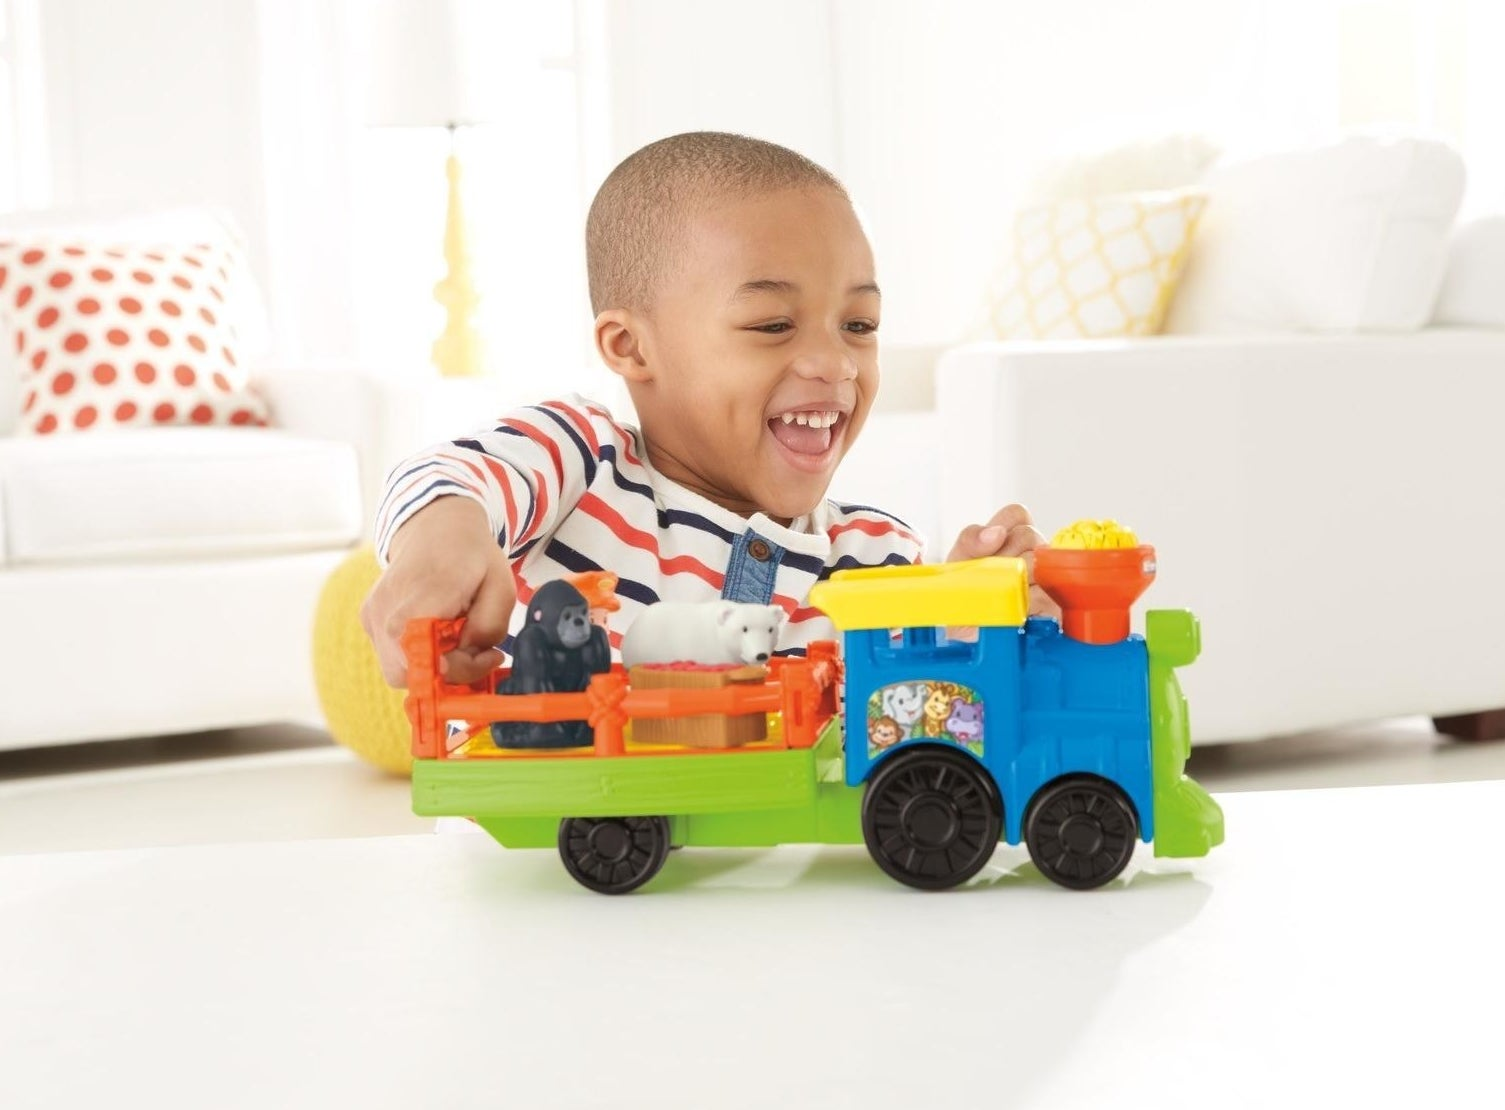 child playing with a toy train that has two animals in it